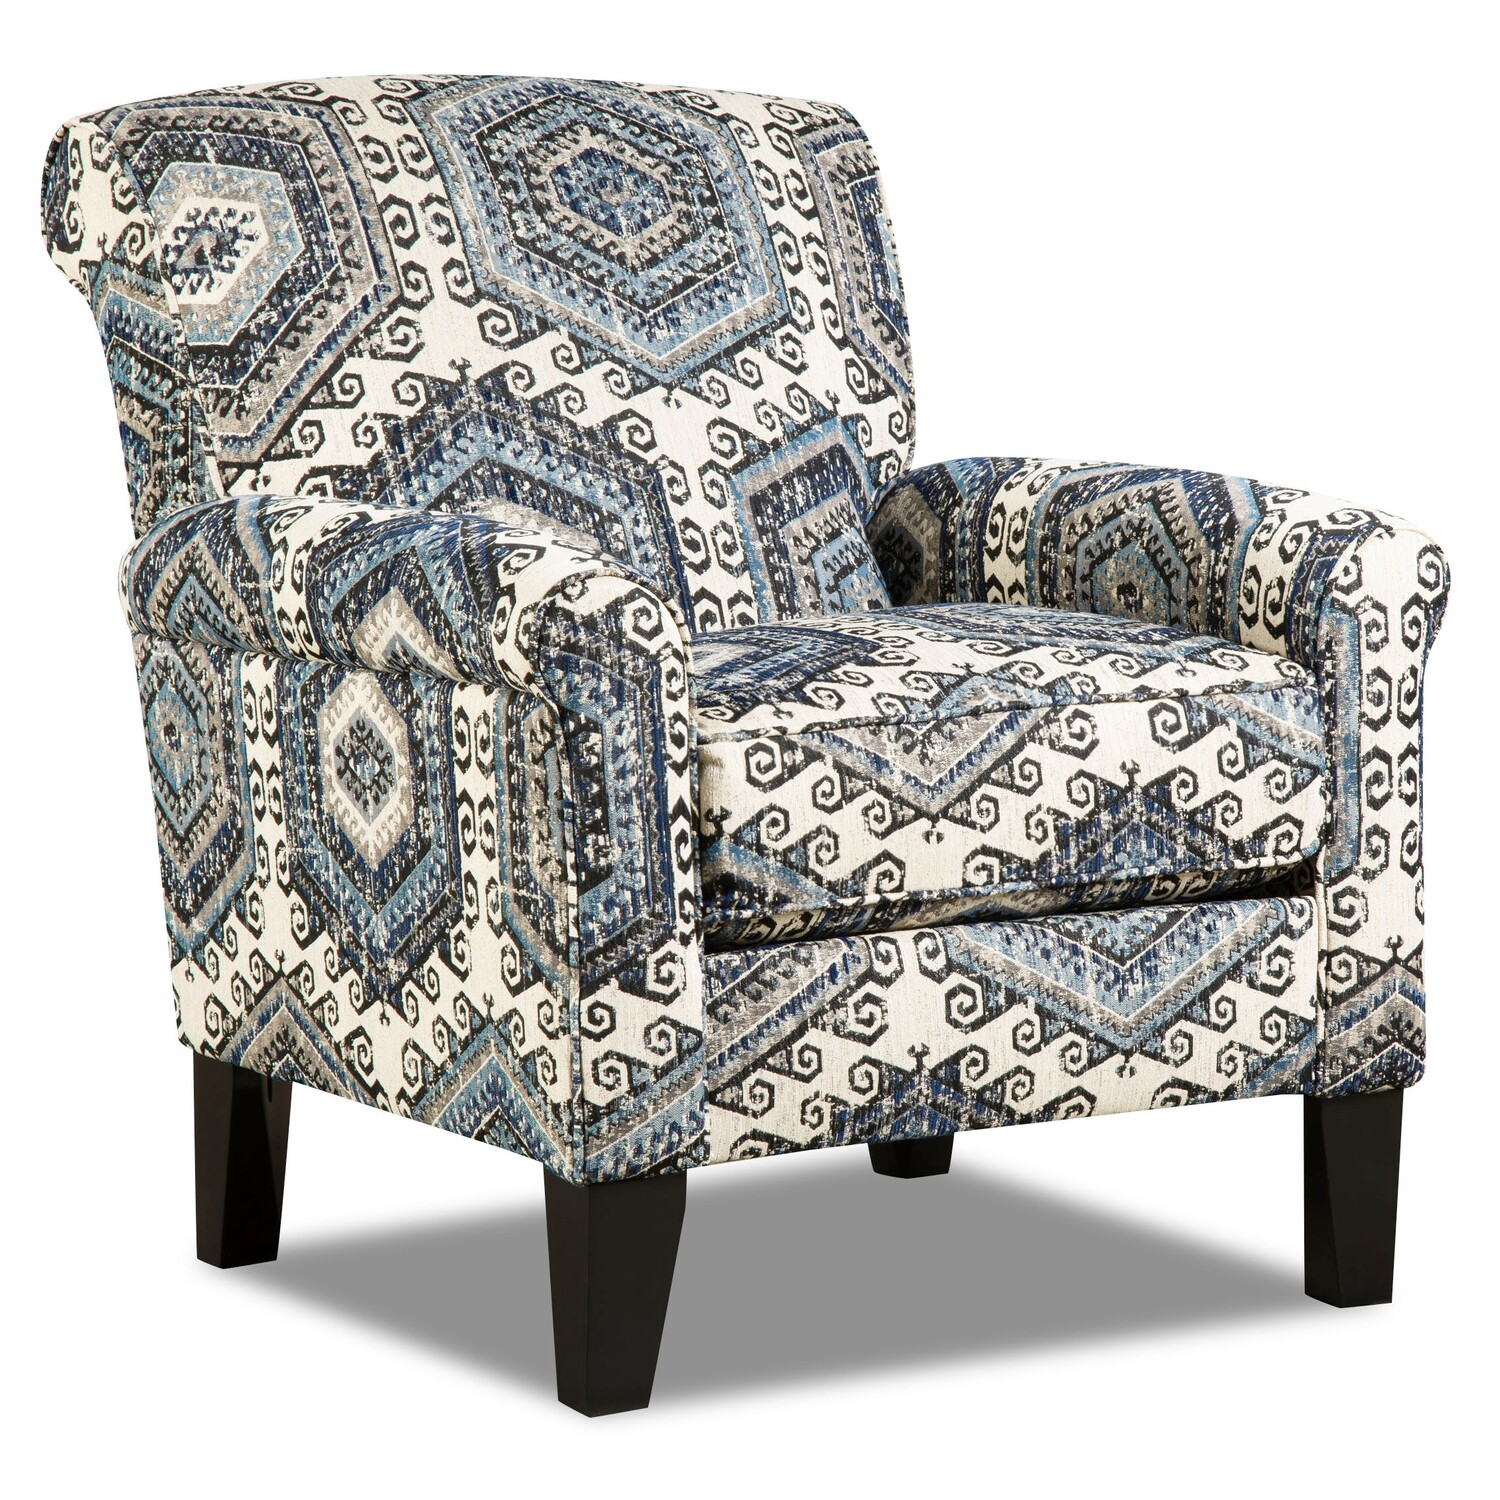 2160 Tequila Indigo - Accent Chair $399